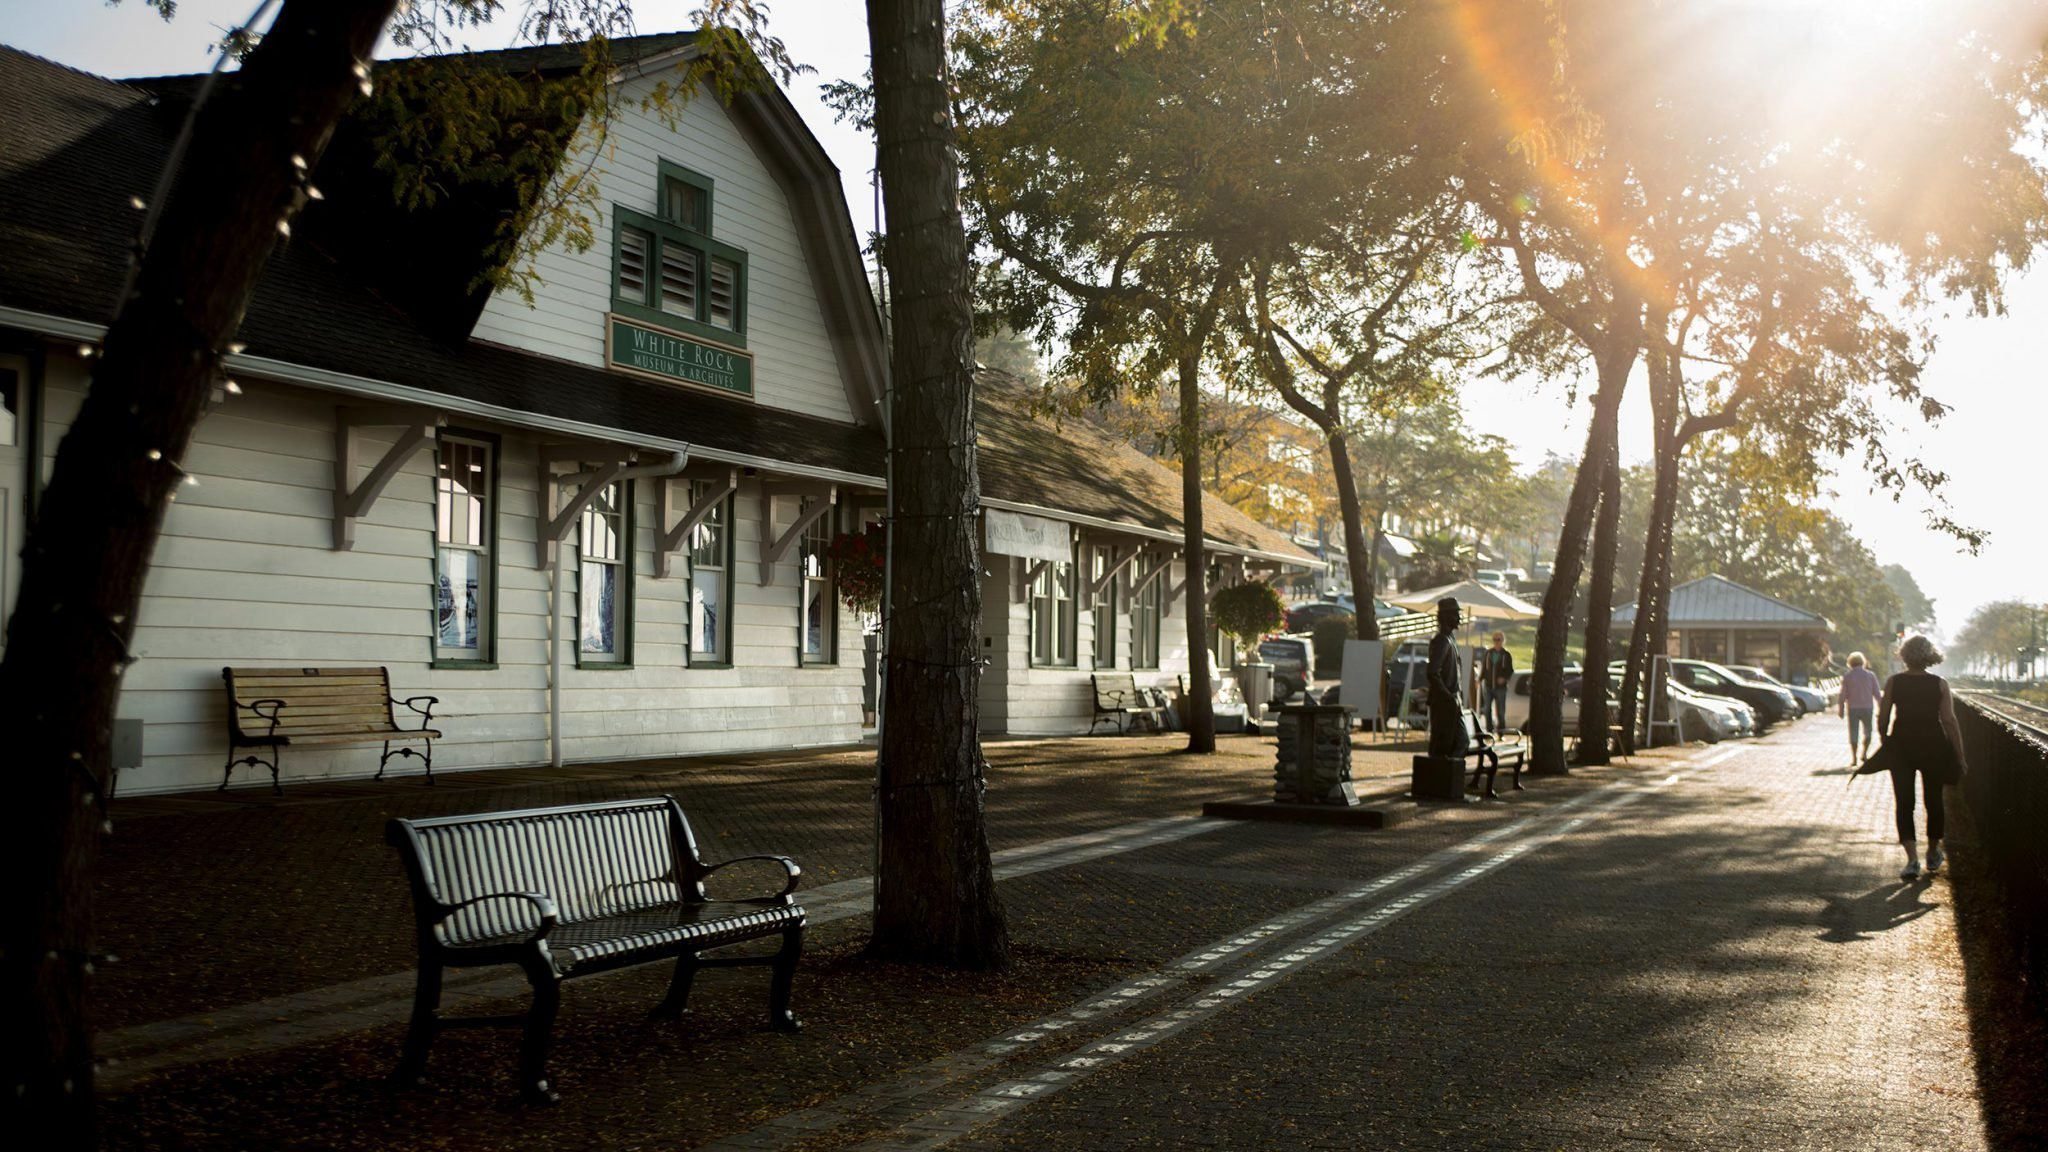 White Rock Museum (Old Train Station)!